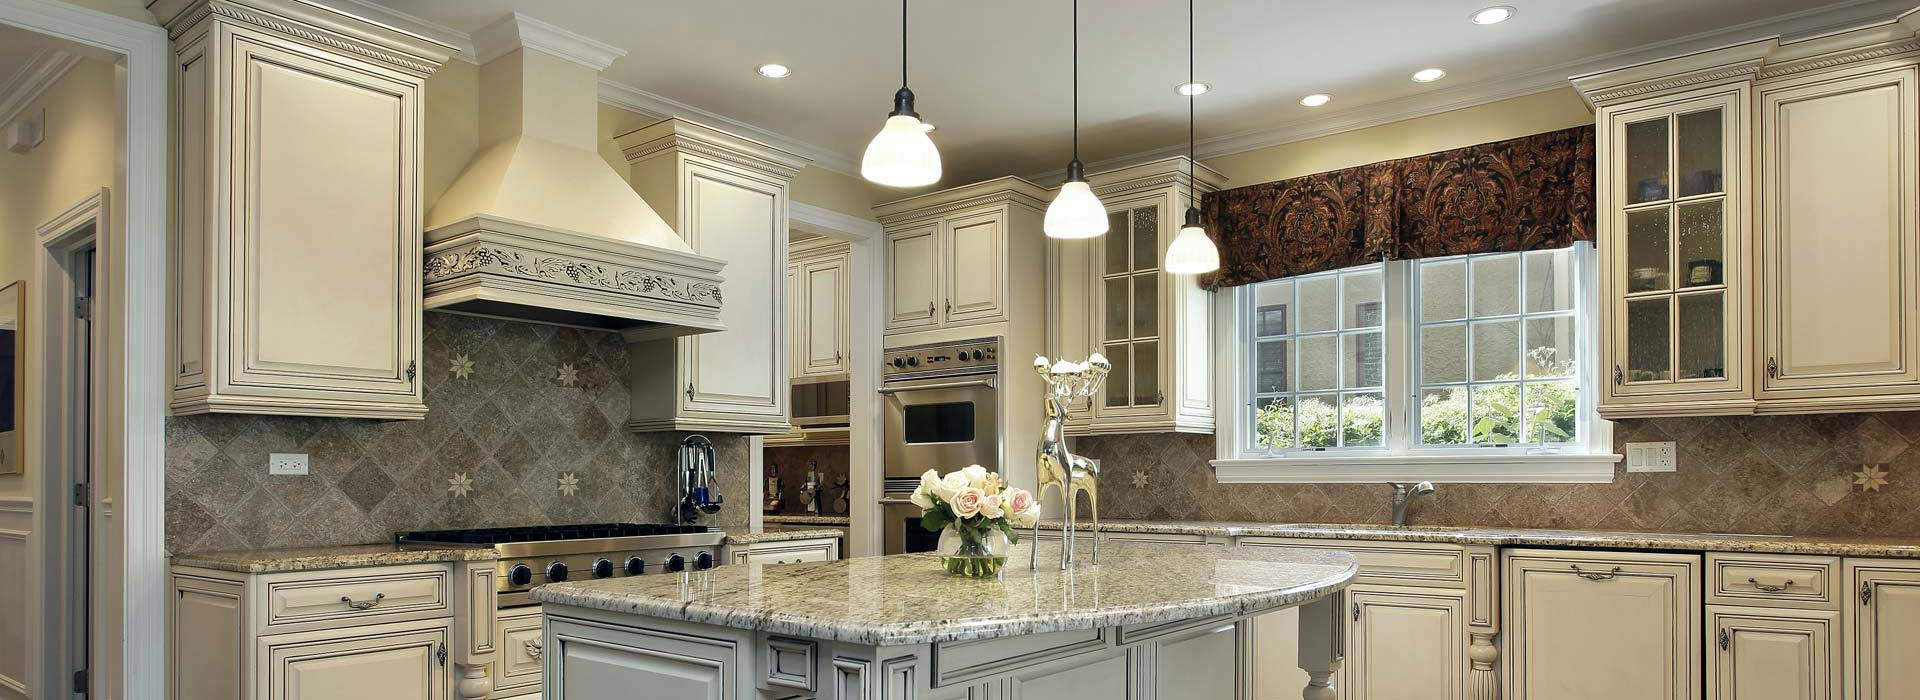 remodeling refacing pittsburgh kitchen services